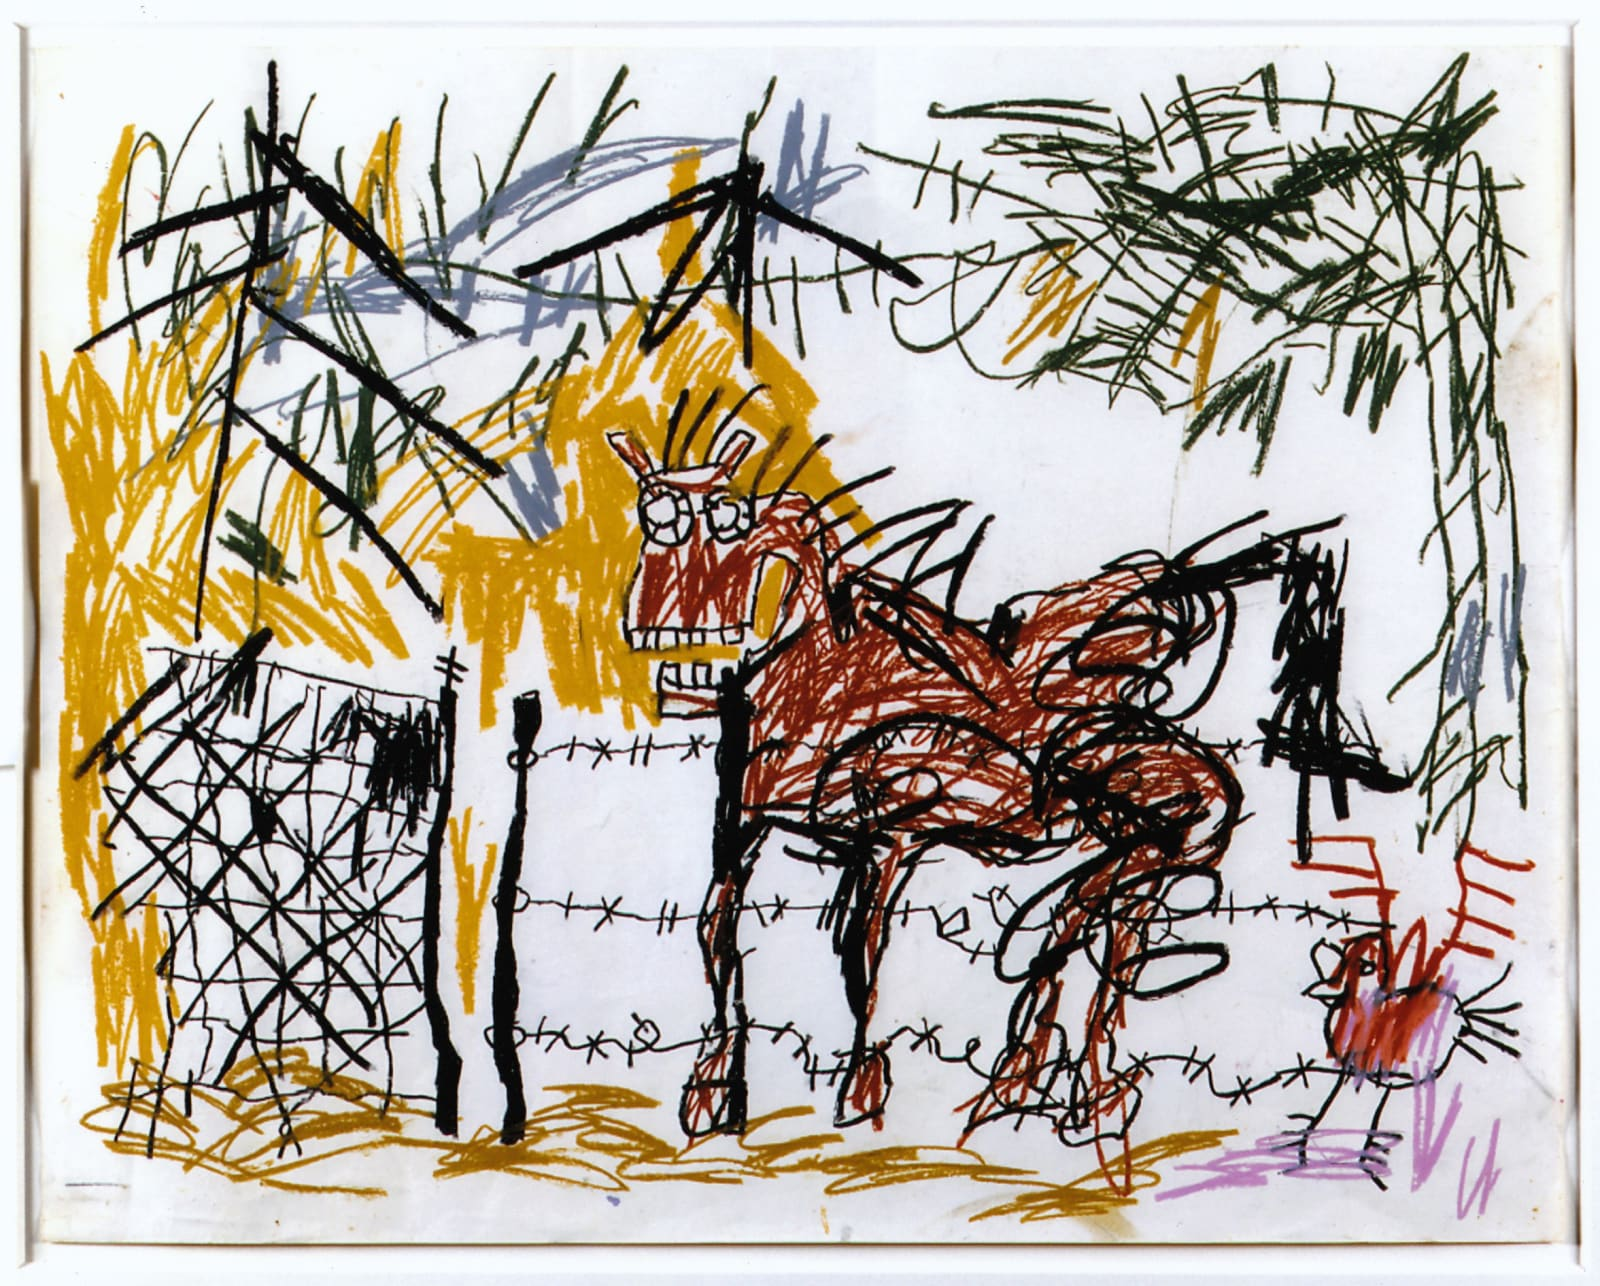 Jean-Michel Basquiat Untitled , 1981 Crayon on Paper 45.1 x 57.2 cm